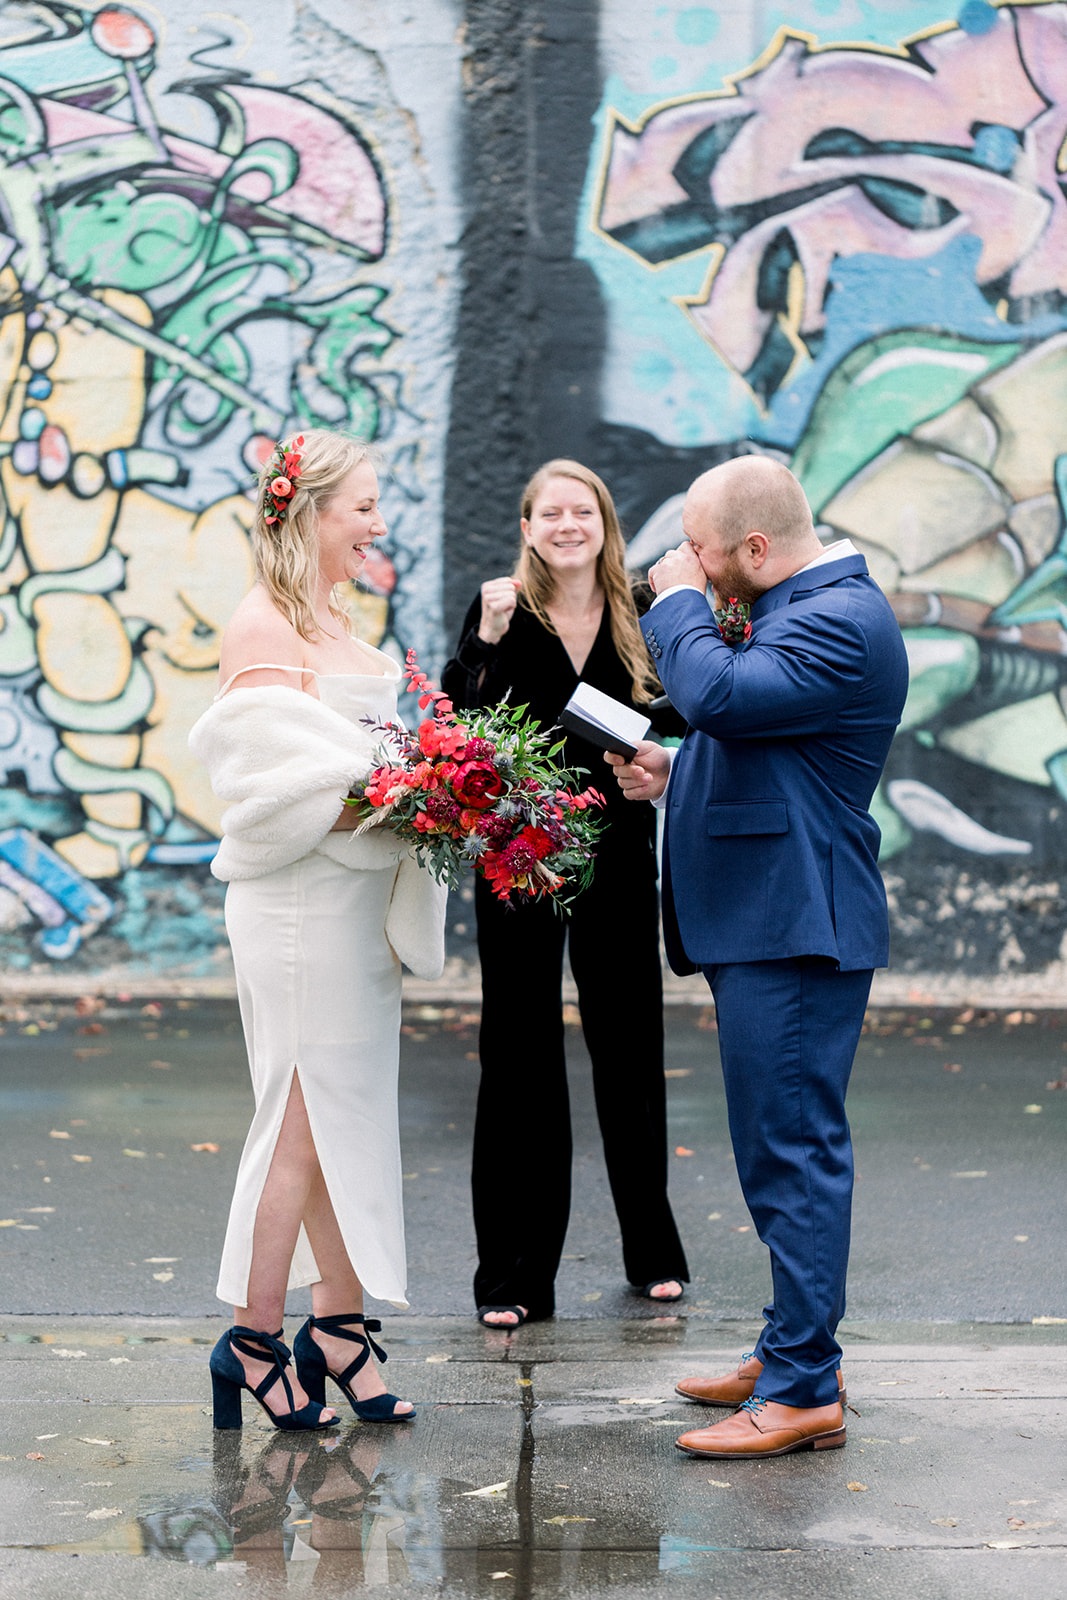 Wedding officiant and modern couple